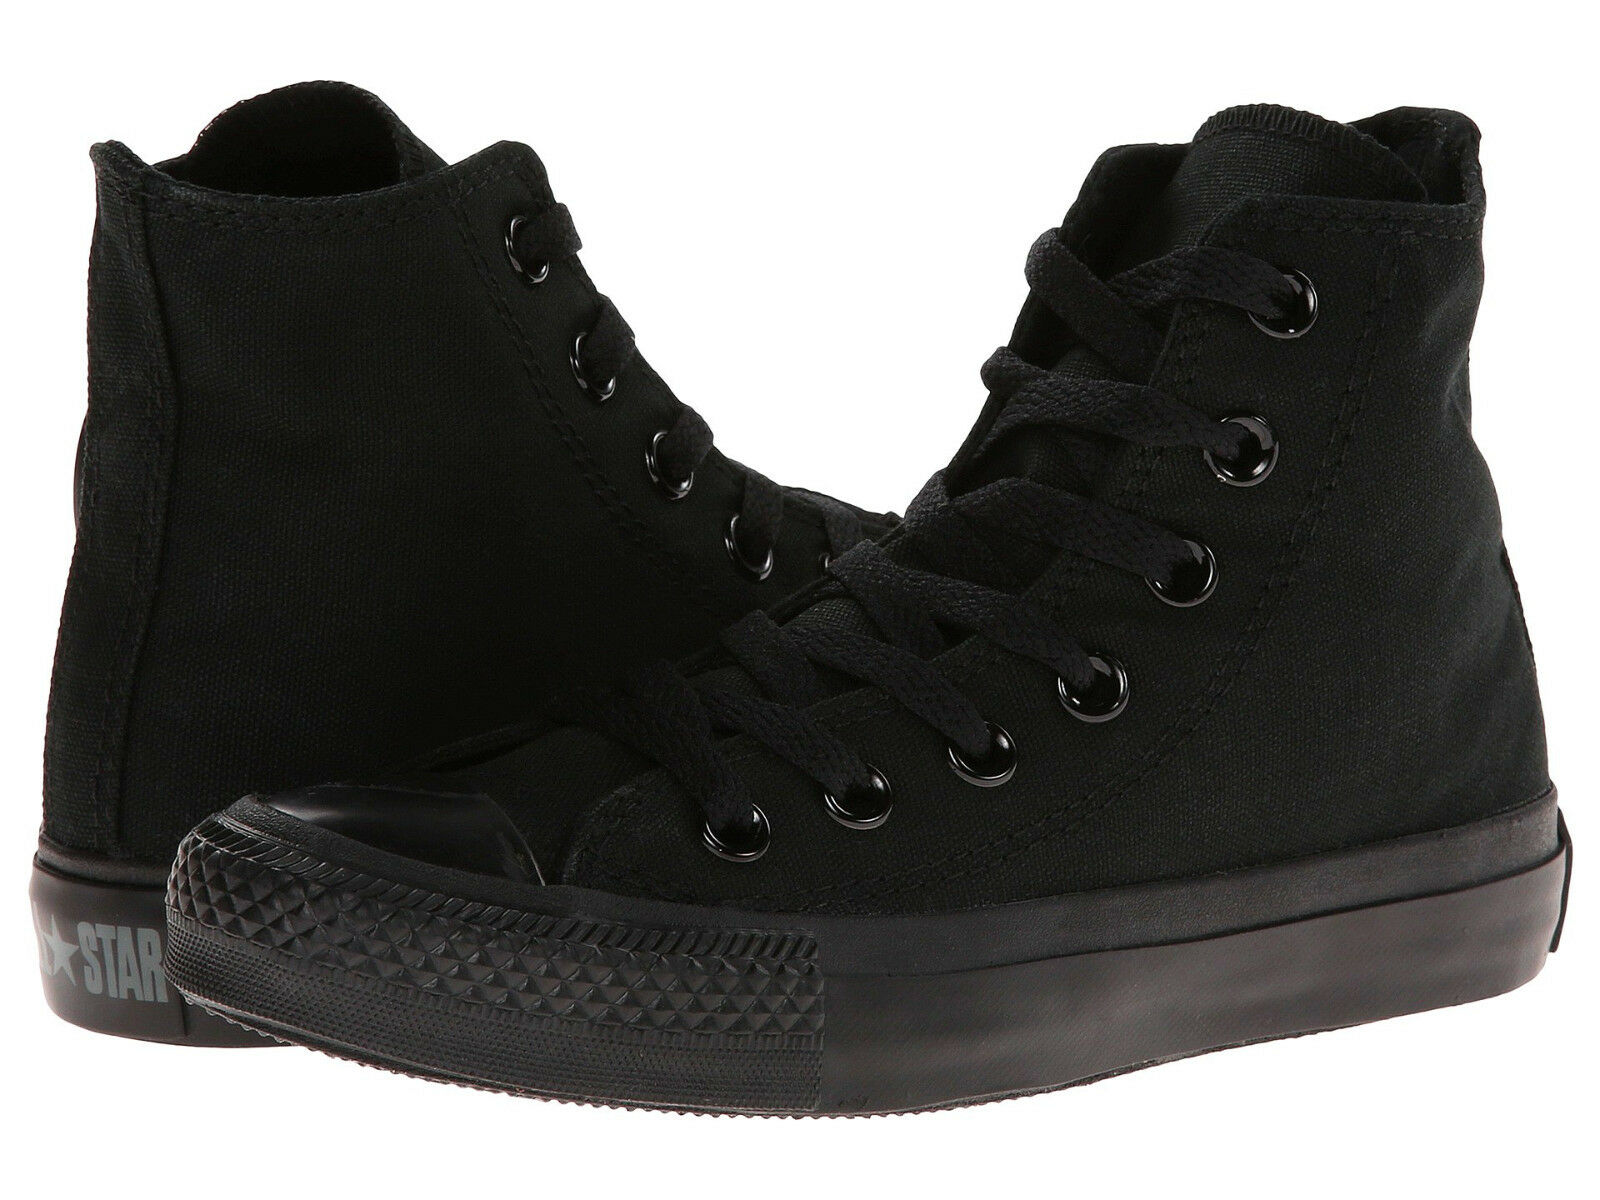 Converse All Star Hi Tops Black Mono Mens Womens Sneakers Tennis Shoes